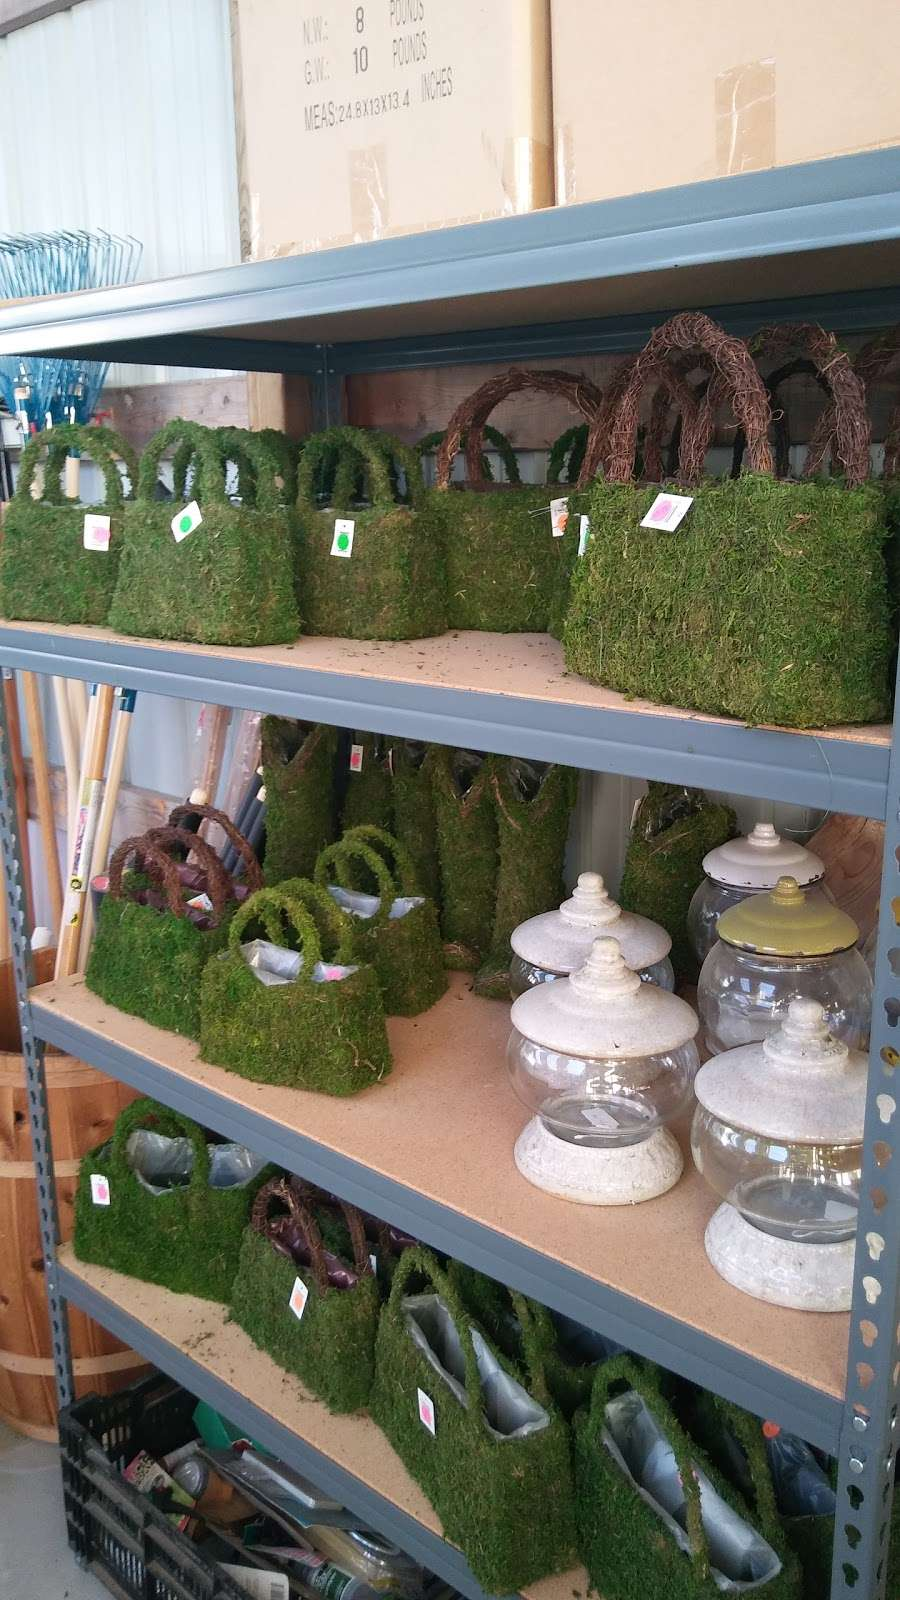 Hahns Greenhouse - store  | Photo 1 of 6 | Address: 2132 N Sage Rd, Walkerton, IN 46574, USA | Phone: (574) 586-3097